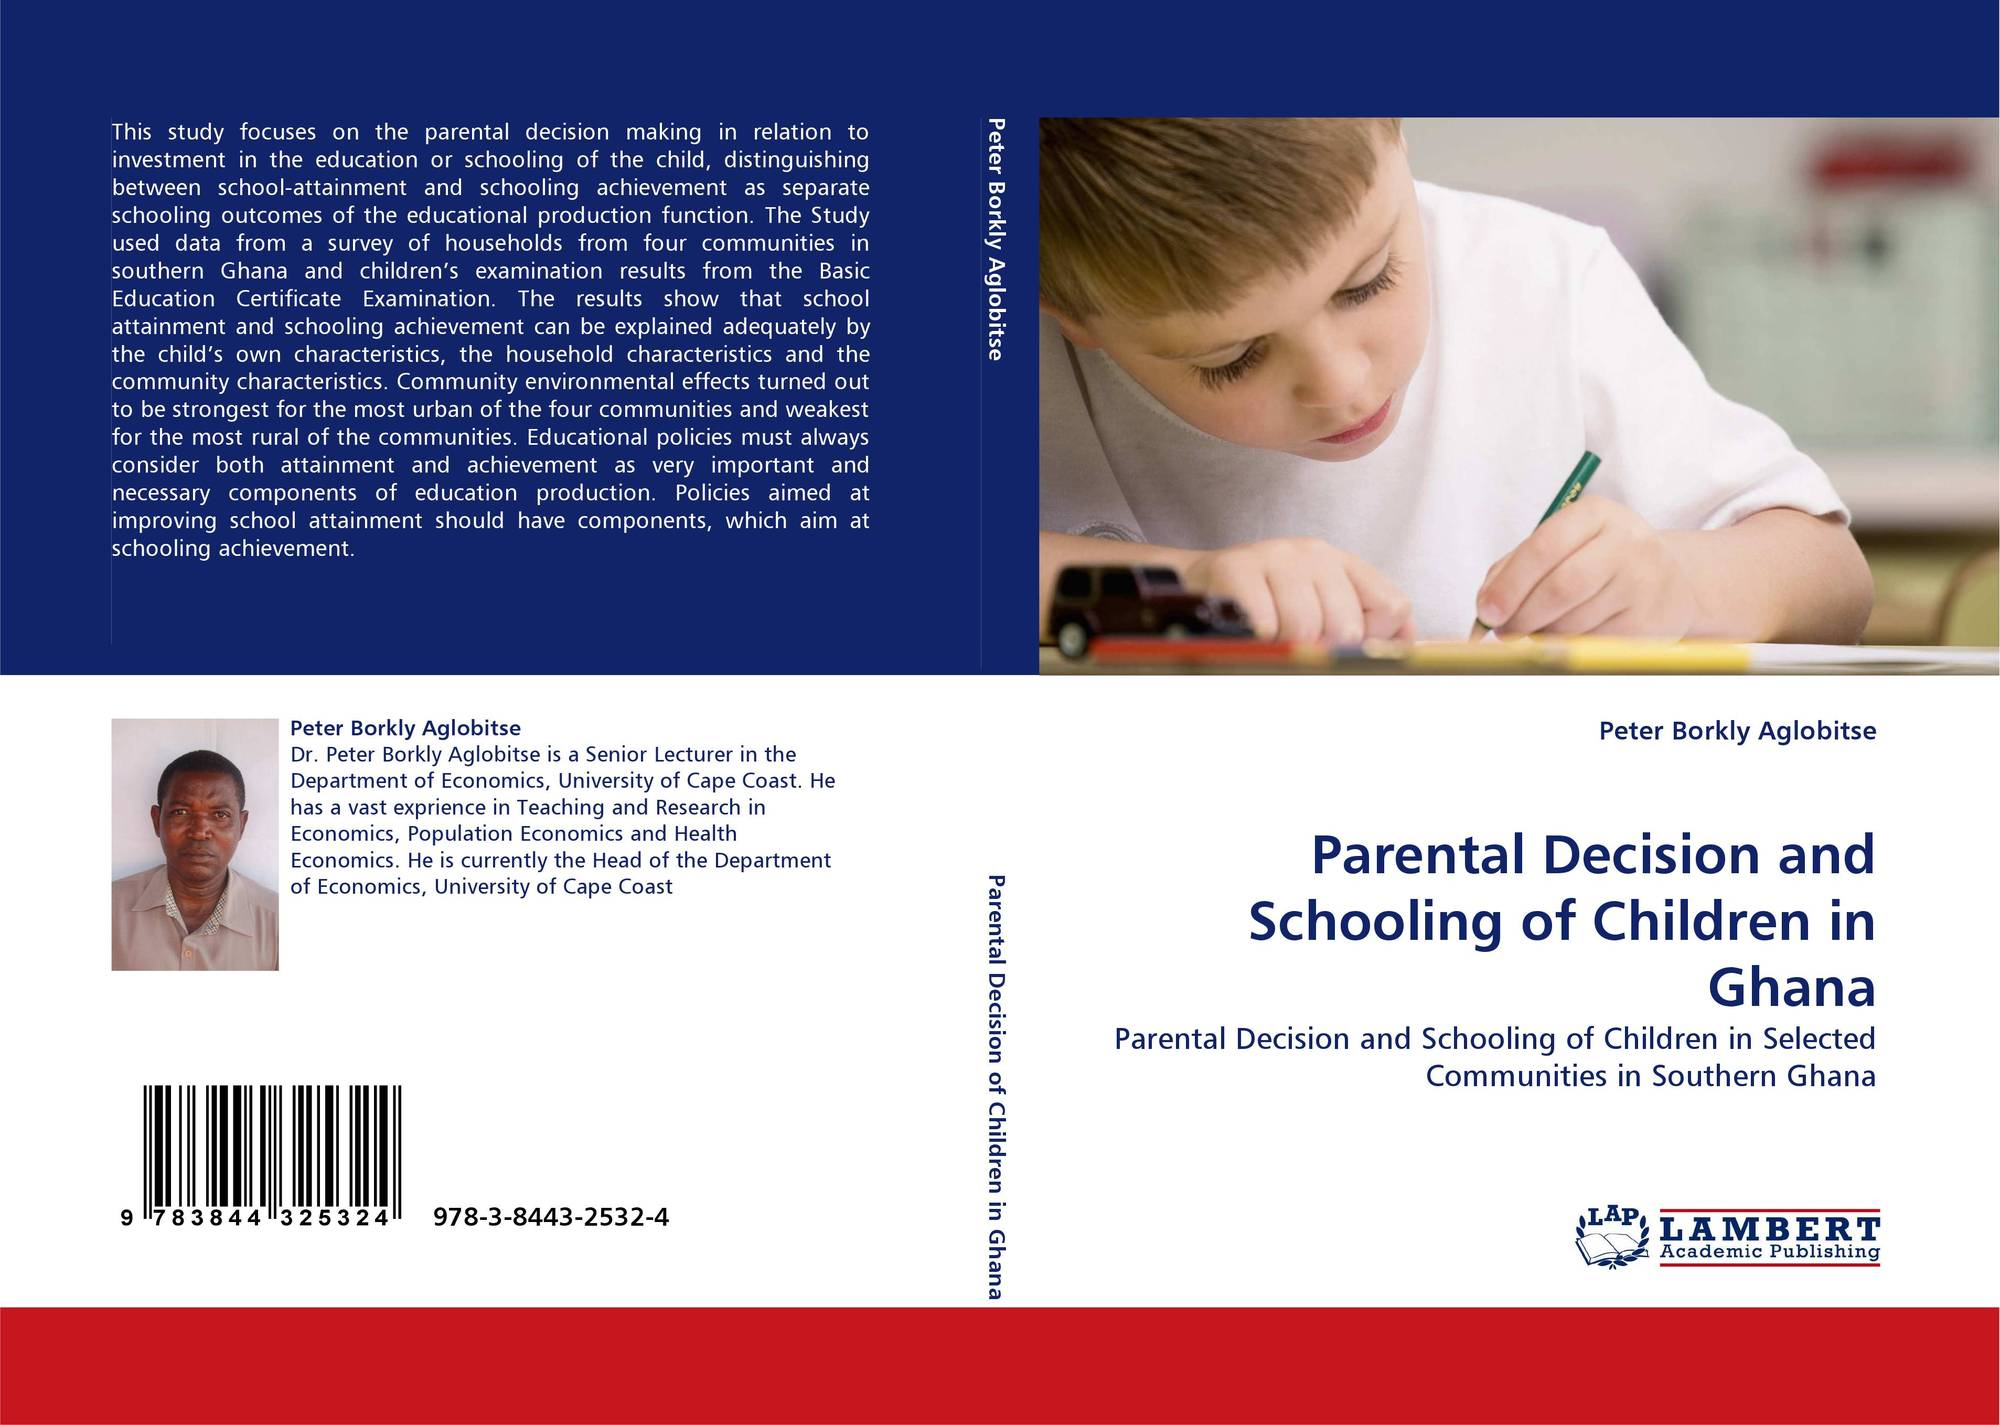 an analysis of the parental influence in the lives of children Advances in consumer research volume 6, 1979 pages 413-418 the influence of children in family decision-making: parents' perceptions roger l jenkins, the university of tennessee.